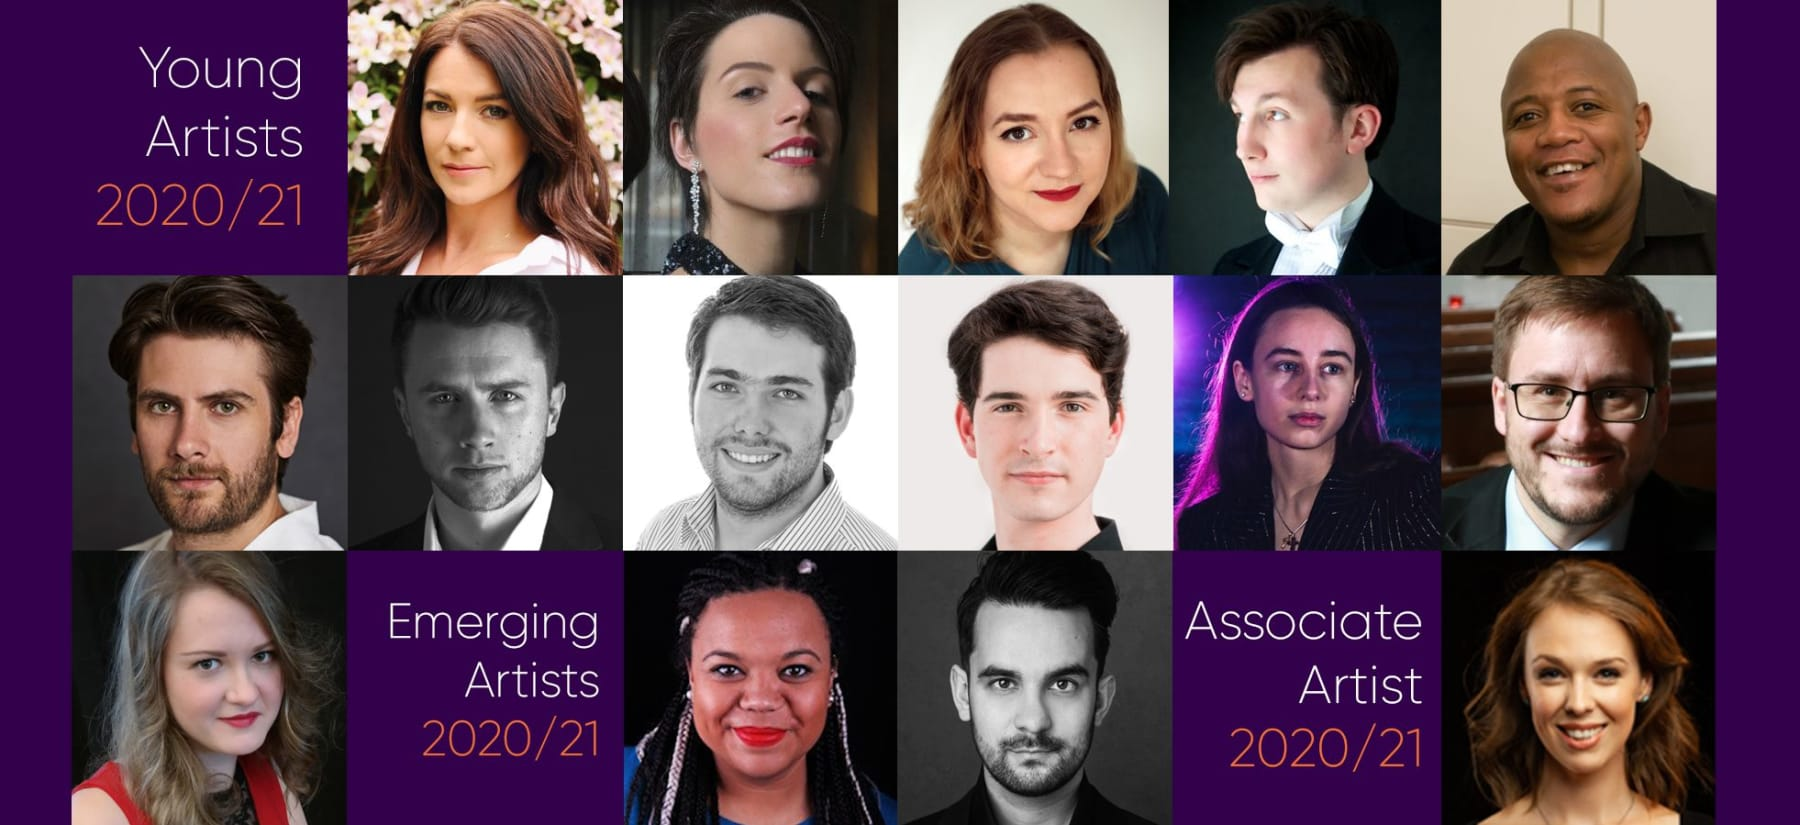 Announcing the 2020/21 Young Artists